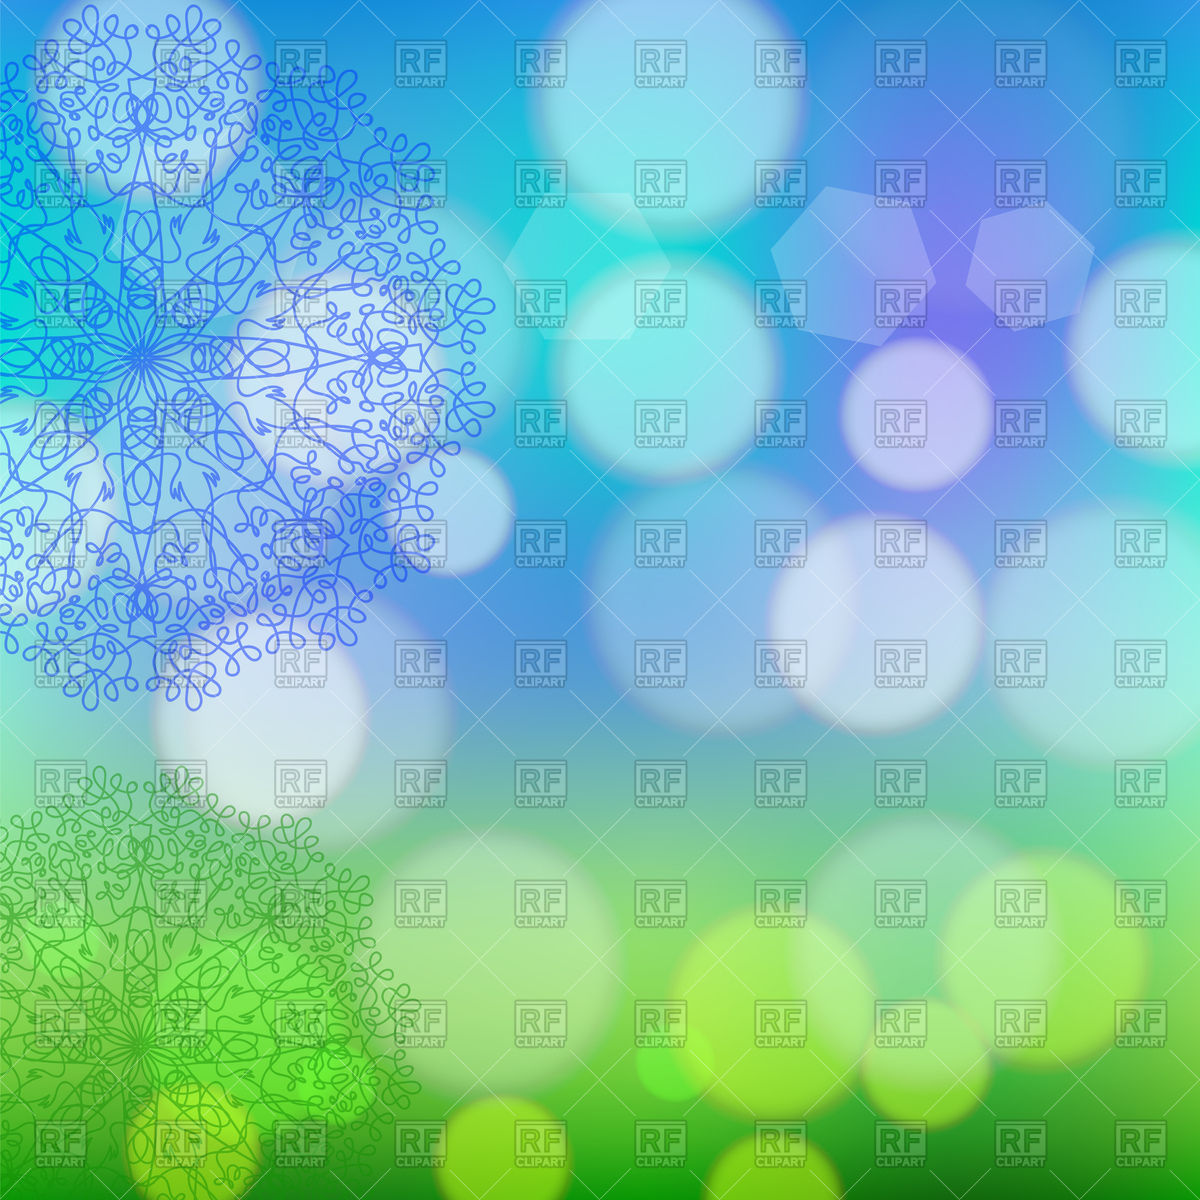 Circle lace ornament on blurred background Vector Image #113886.